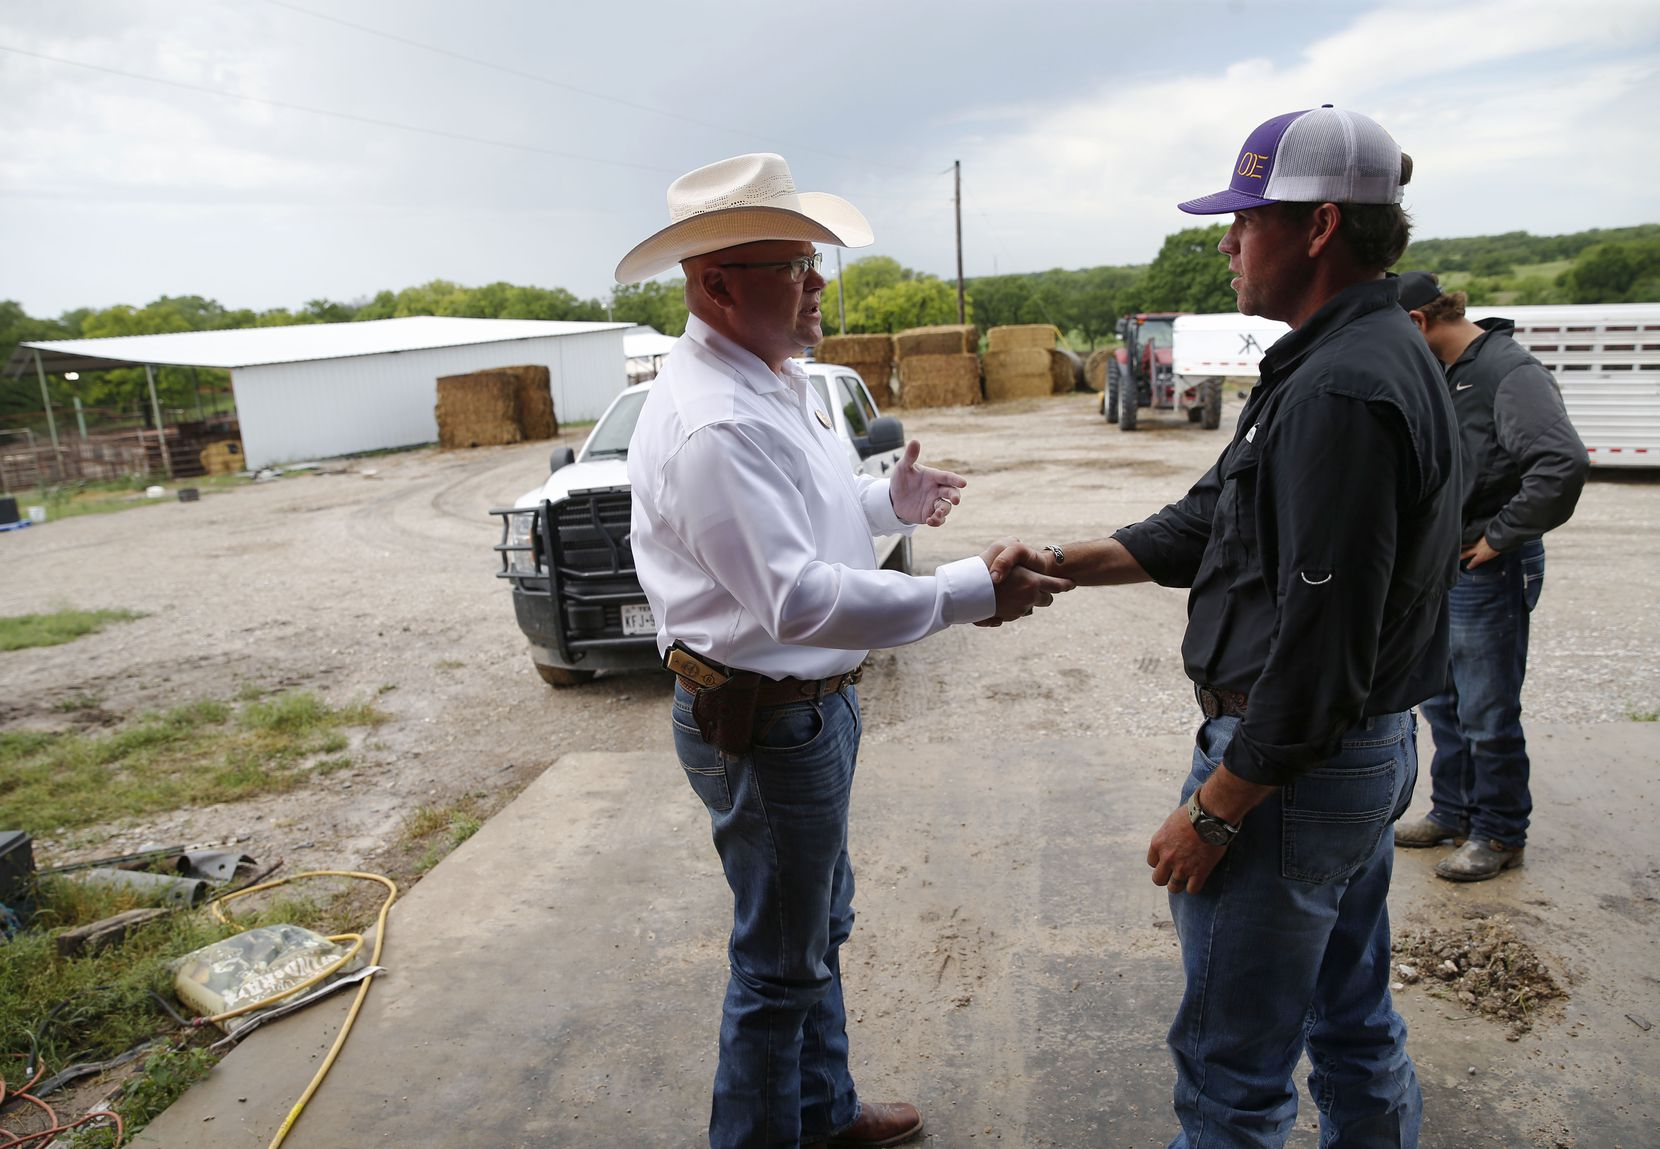 Special Ranger John Bradshaw (left) of the Texas and Southwestern Cattle Raisers Association shakes hands with Kyle Anderson after Bradshaw got his story about what happened when he found stray cattle on a neighbor's land in Decatur, Texas on Thursday, May 2, 2019.